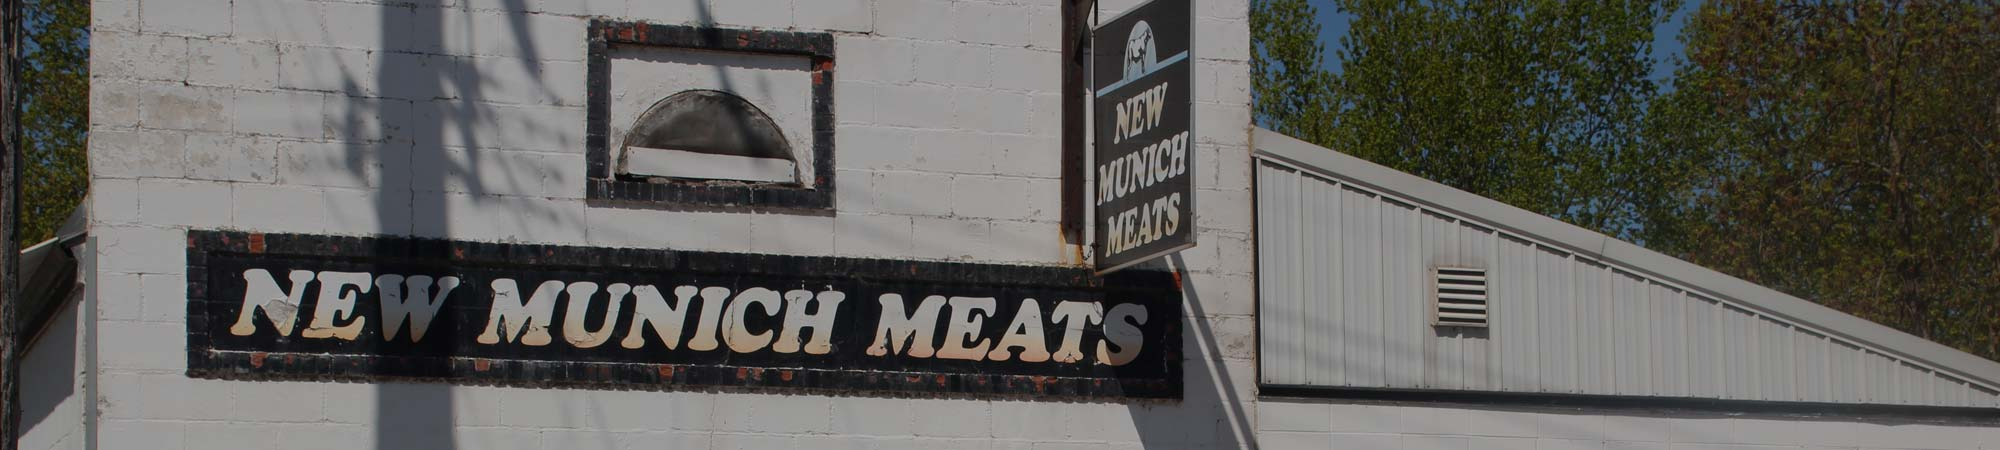 Exterior of New Munich Meats in New Munich, Minnesota